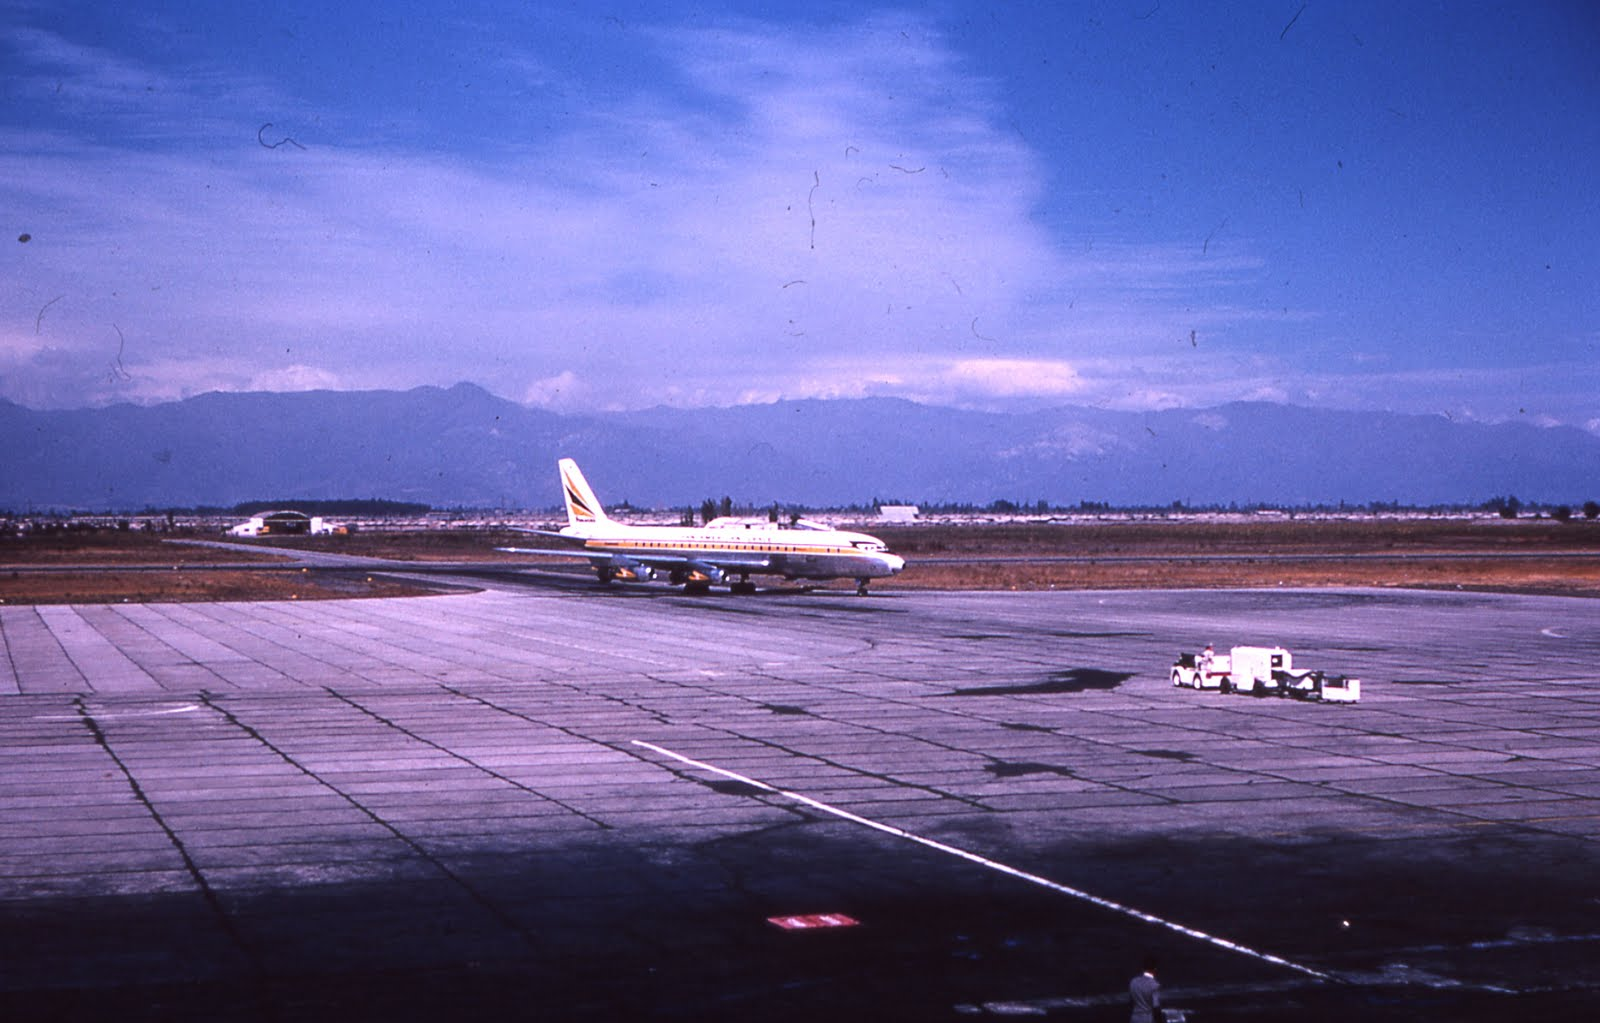 Enterreno - Fotos históricas de chile - fotos antiguas de Chile - Aeropuerto de Cerrillos en 1963